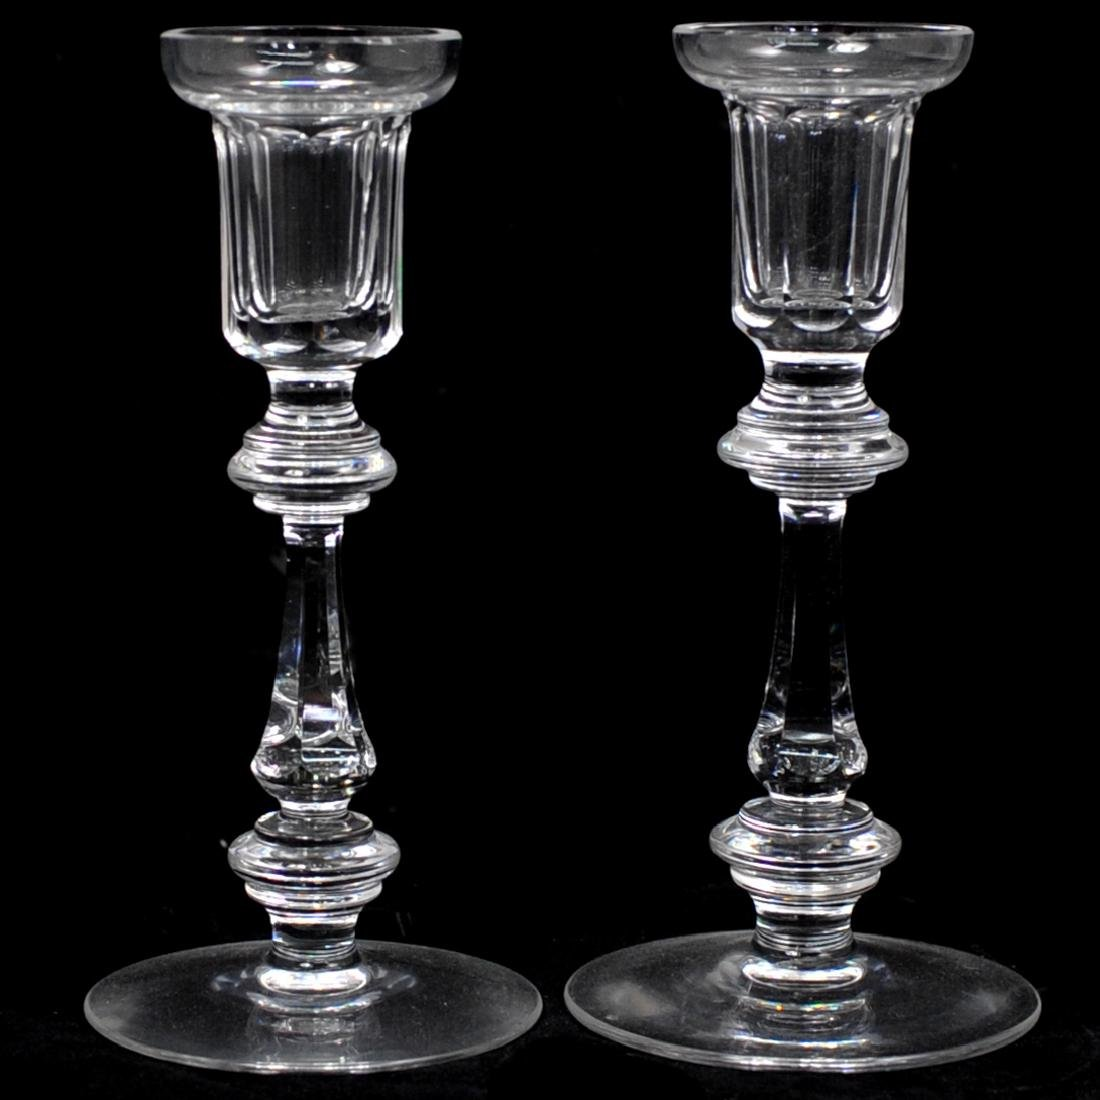 Pair of Waterford Crystal Candle Holders